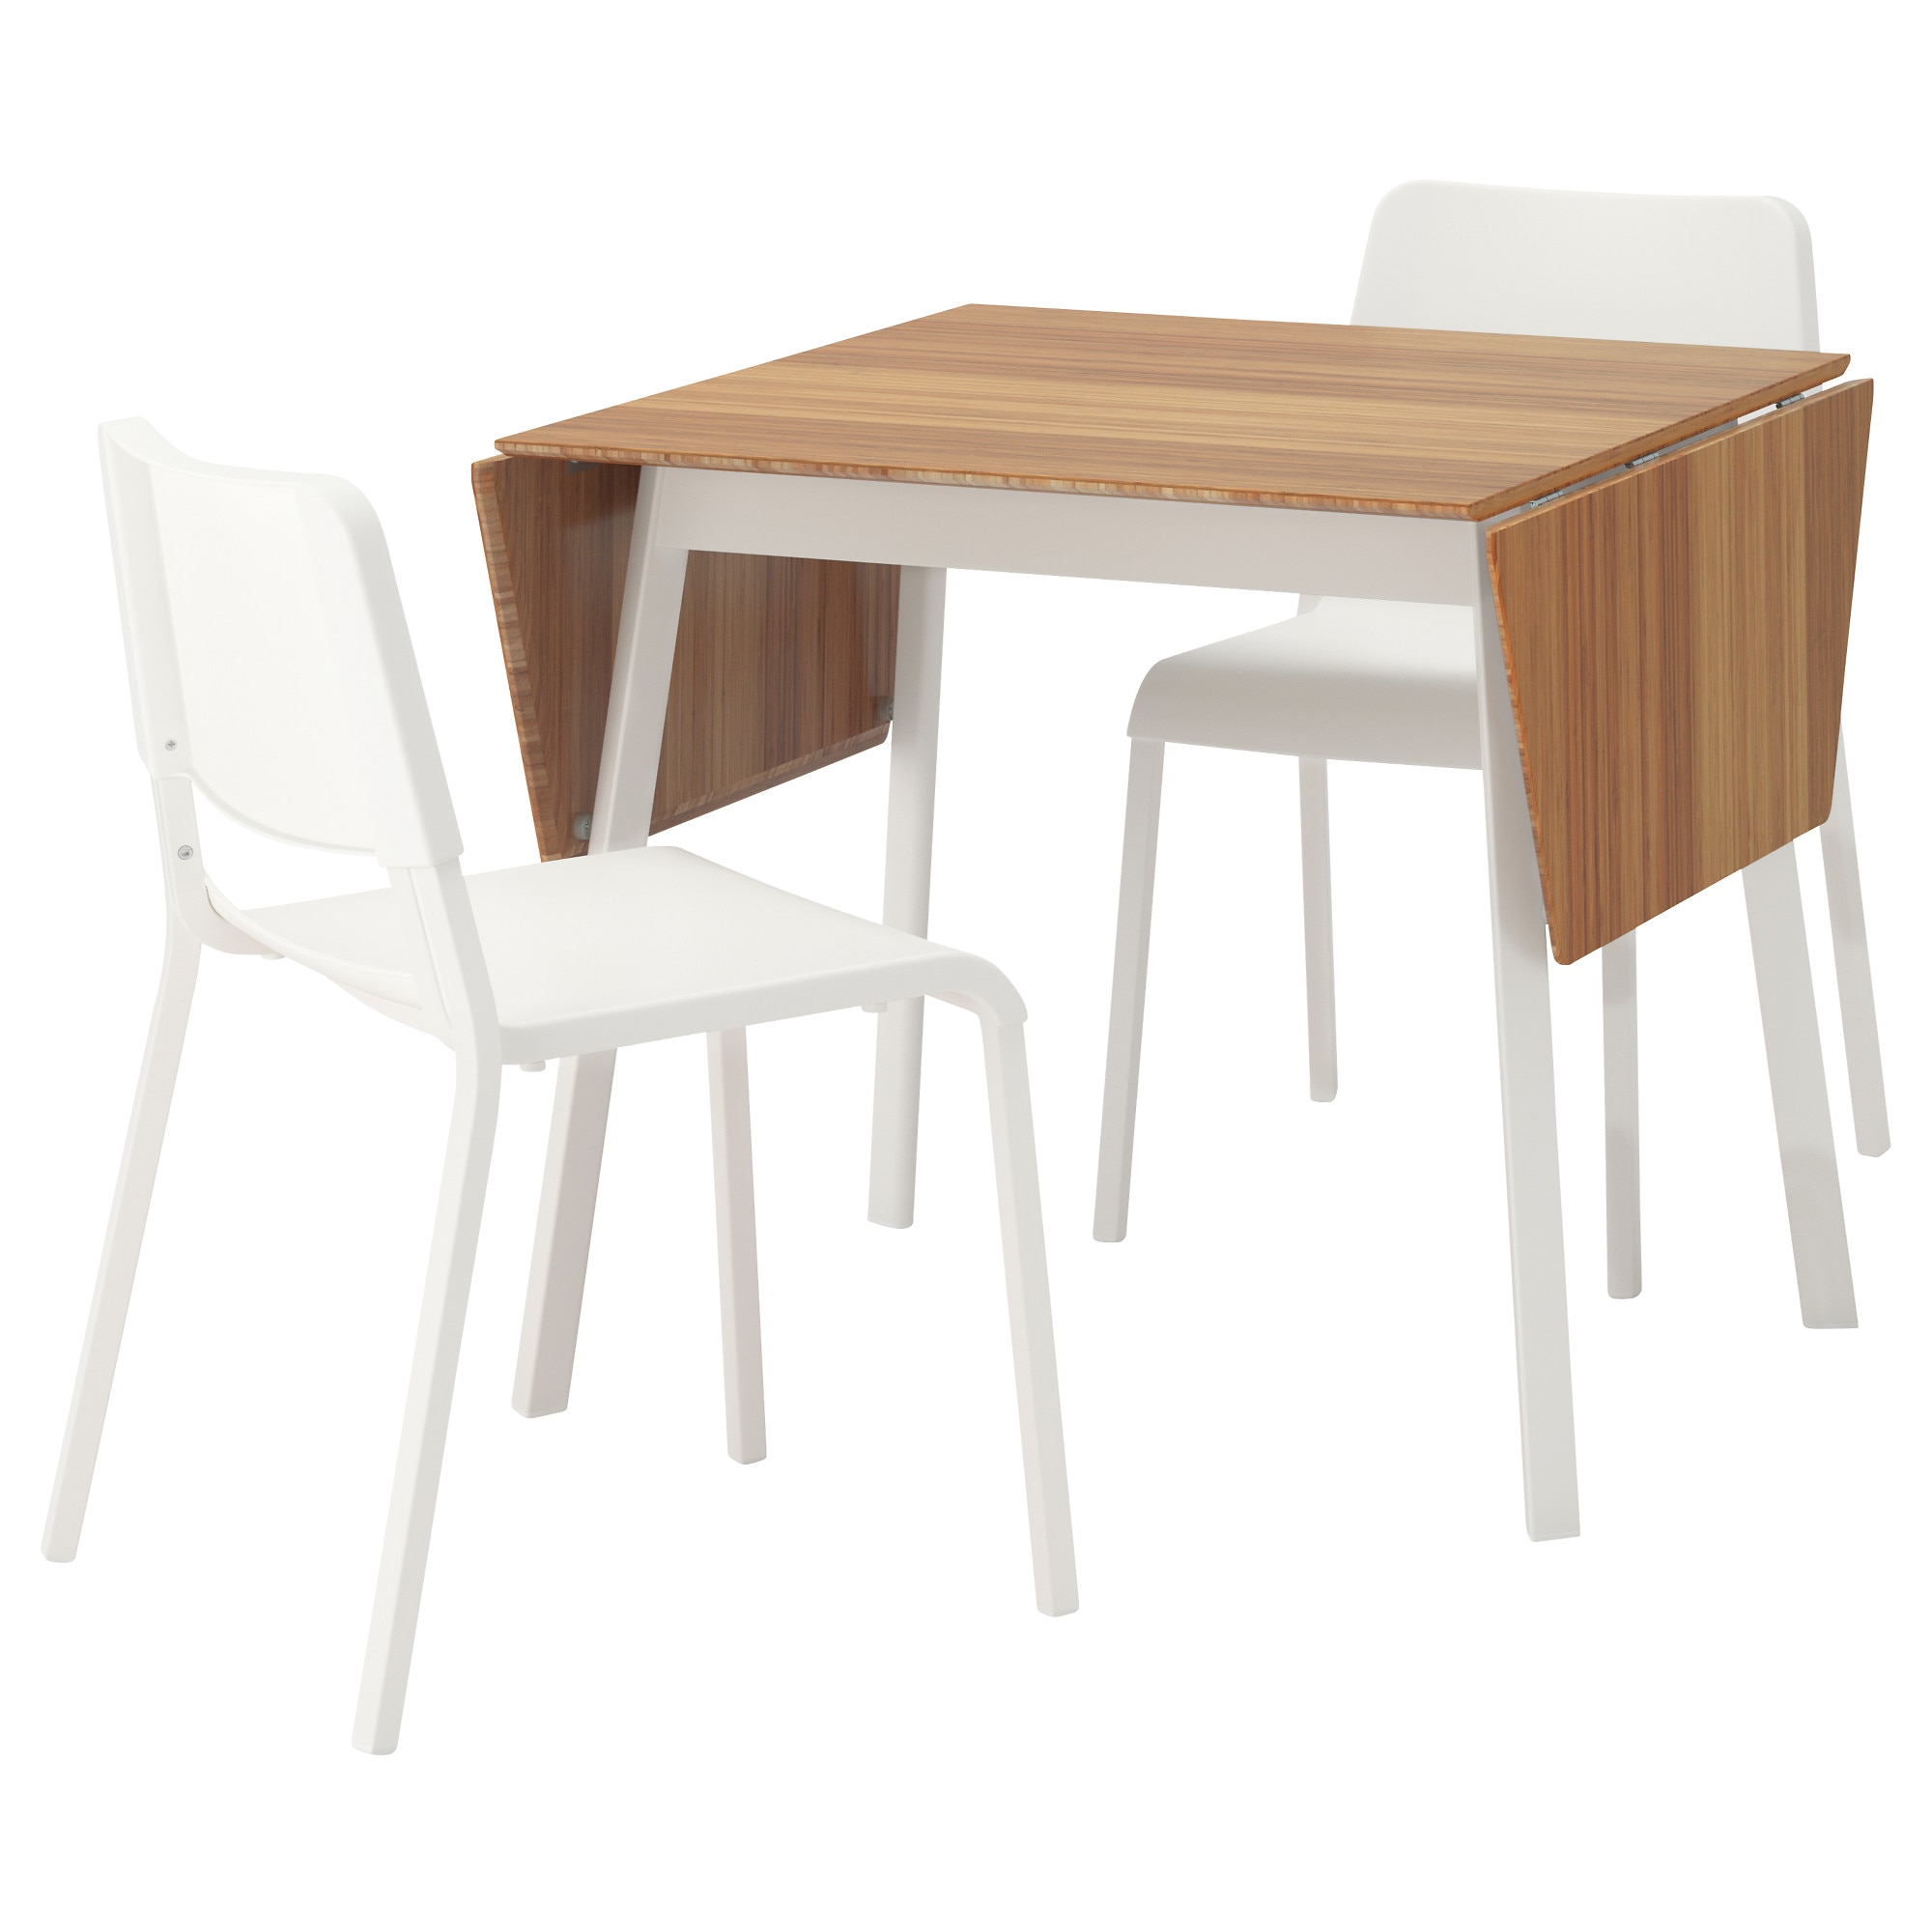 Ikea ps 2012 teodores table and 2 chairs ikea inter ikea systems bv 1999 2017 privacy policy geotapseo Gallery